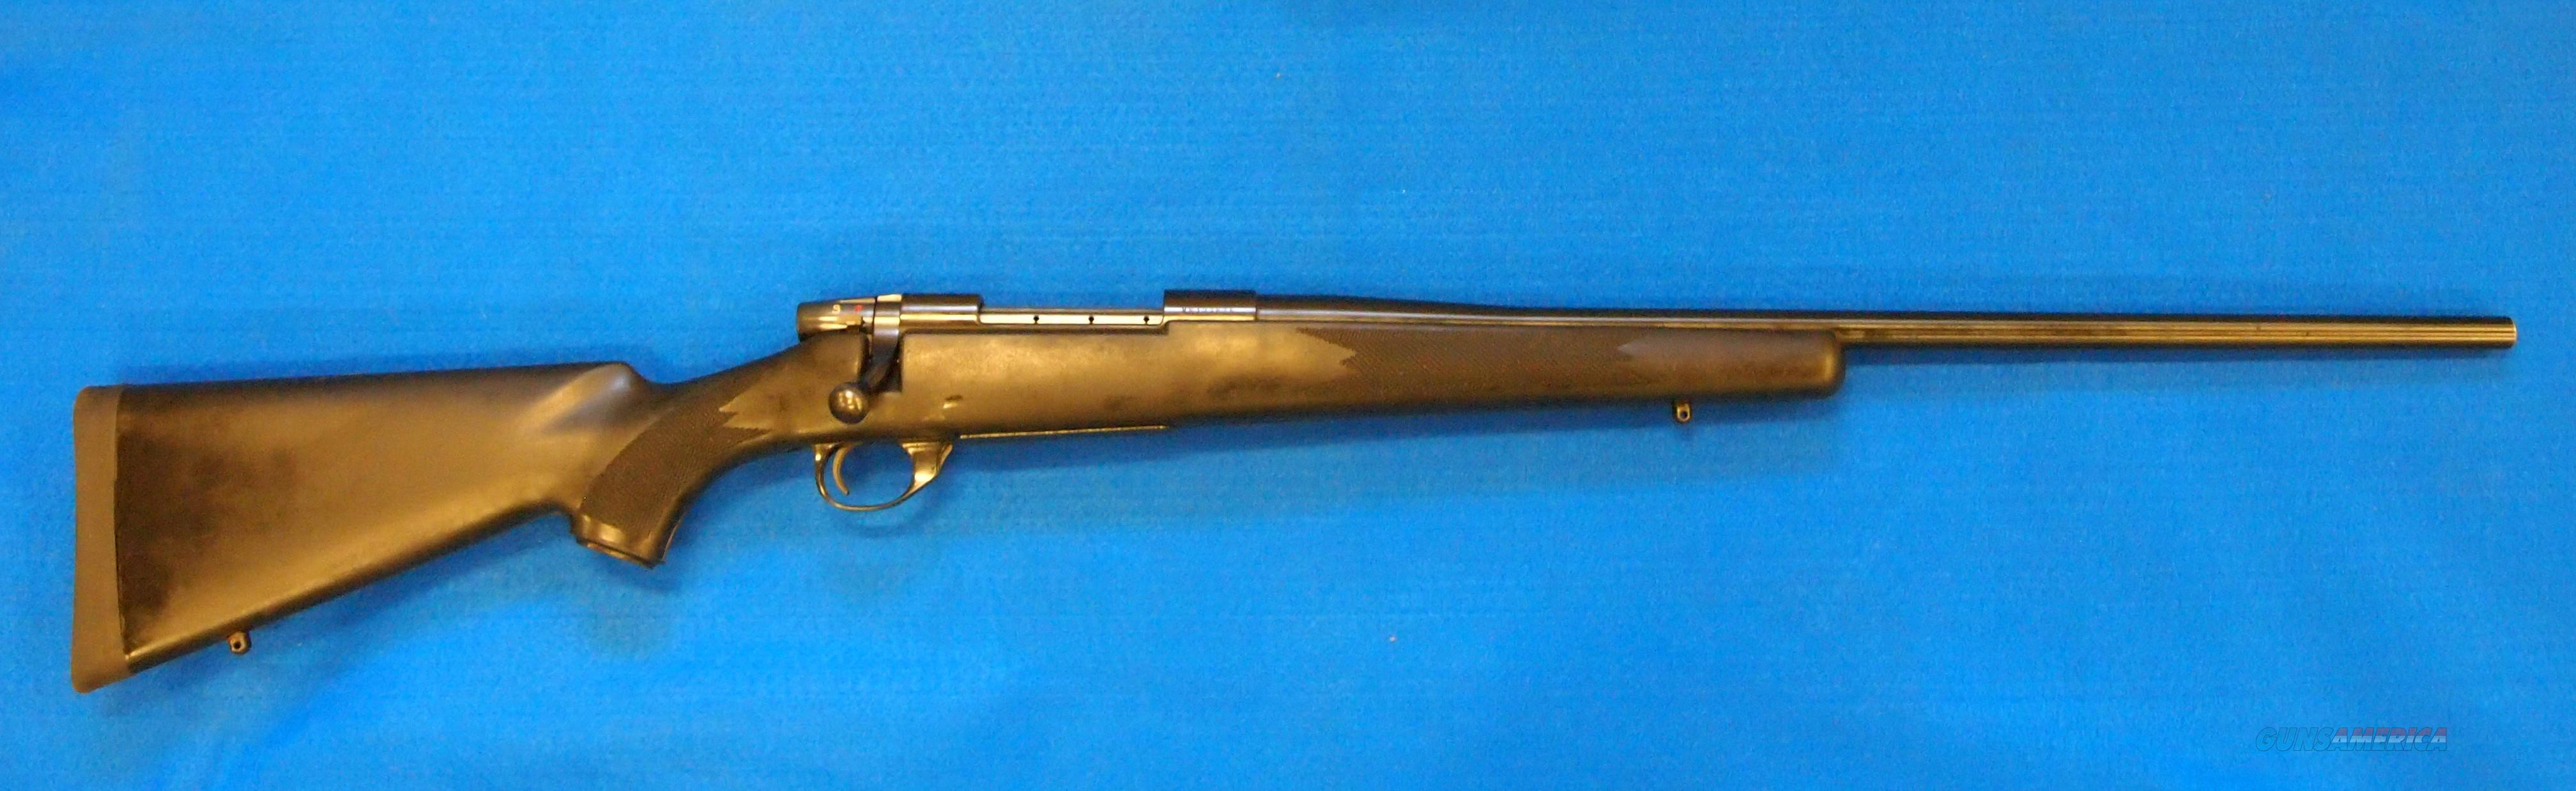 WEATHERBY VANGUARD 7MM REM MAG  Guns > Rifles > Weatherby Rifles > Sporting